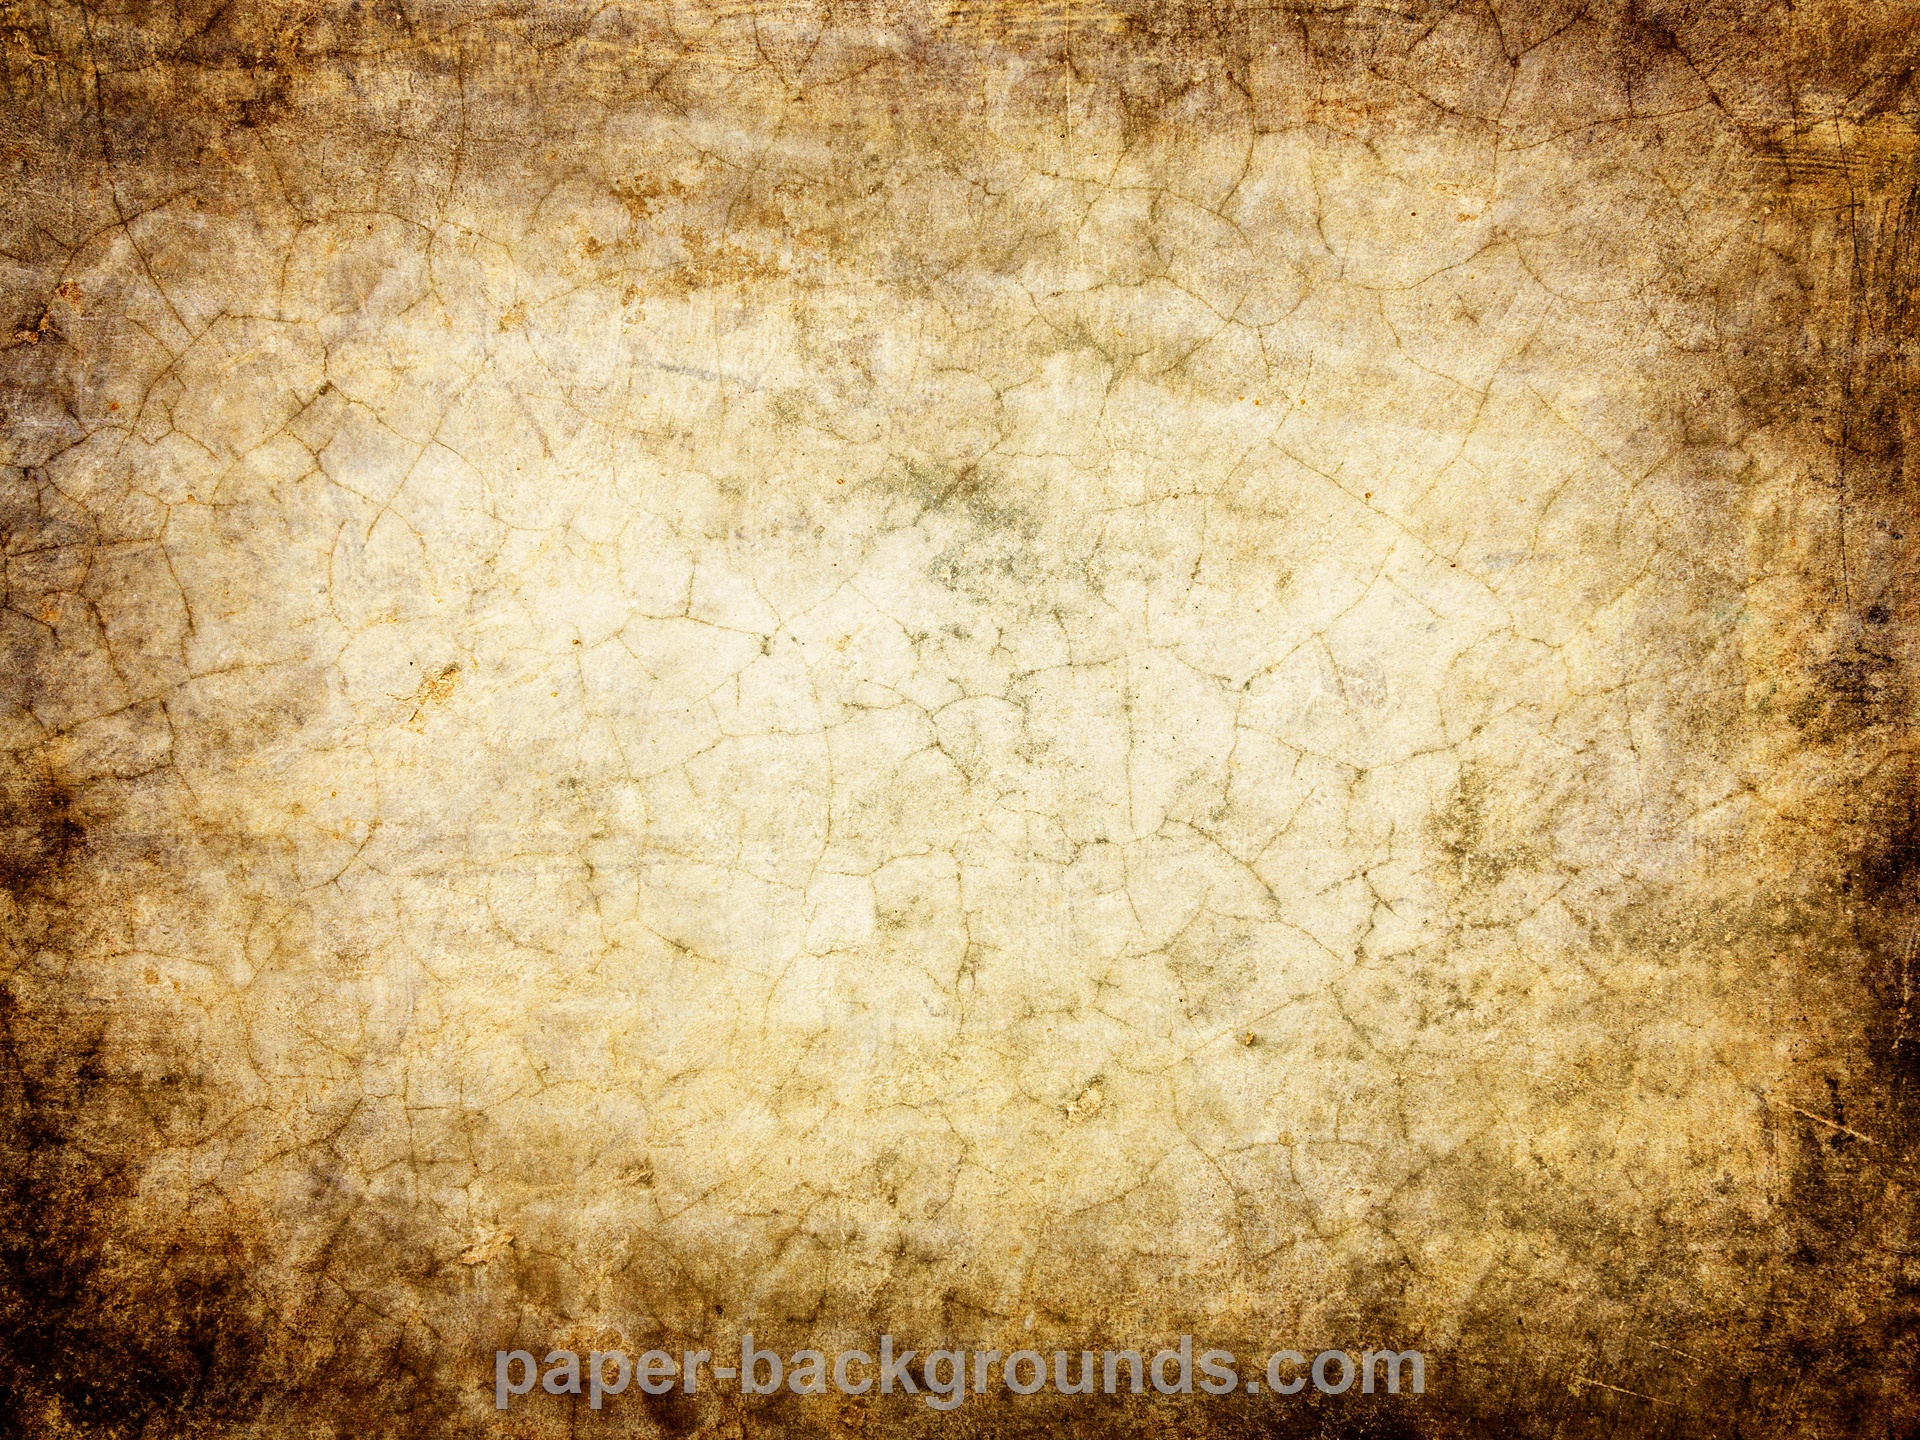 Paper Backgrounds | brown-grunge-background-hd